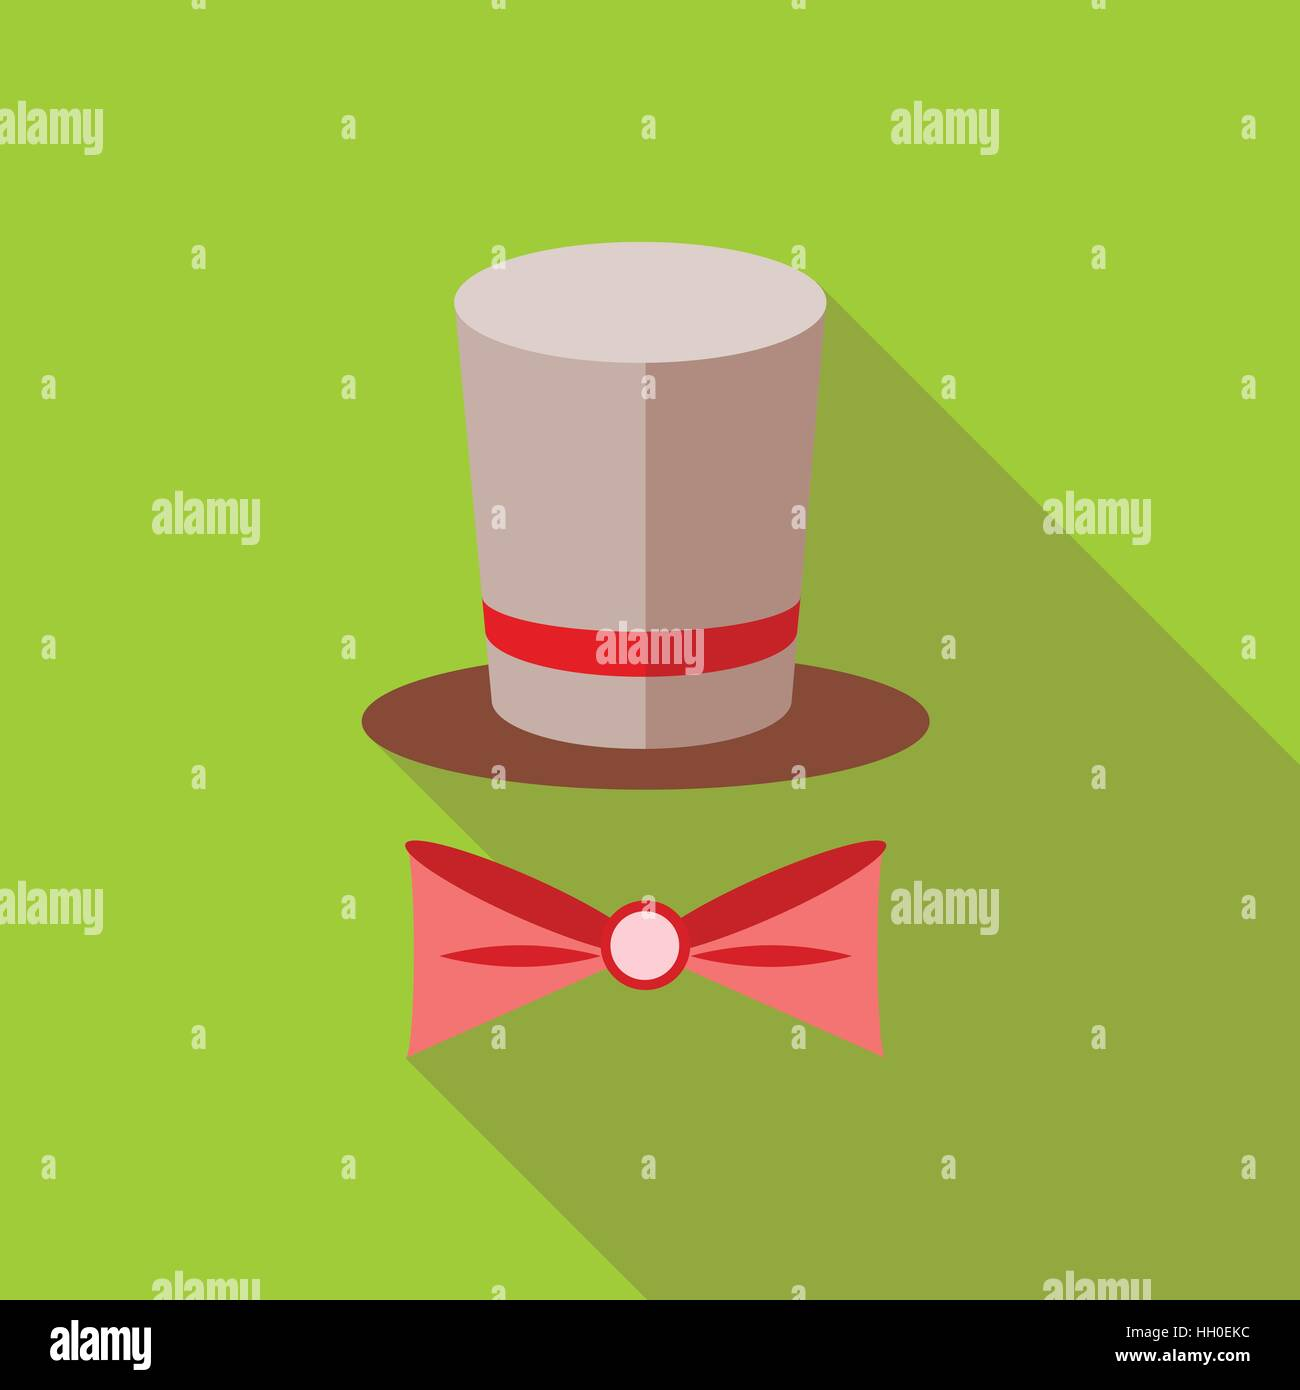 Top hat and bow tie icon flat style stock vector art illustration top hat and bow tie icon flat style voltagebd Choice Image